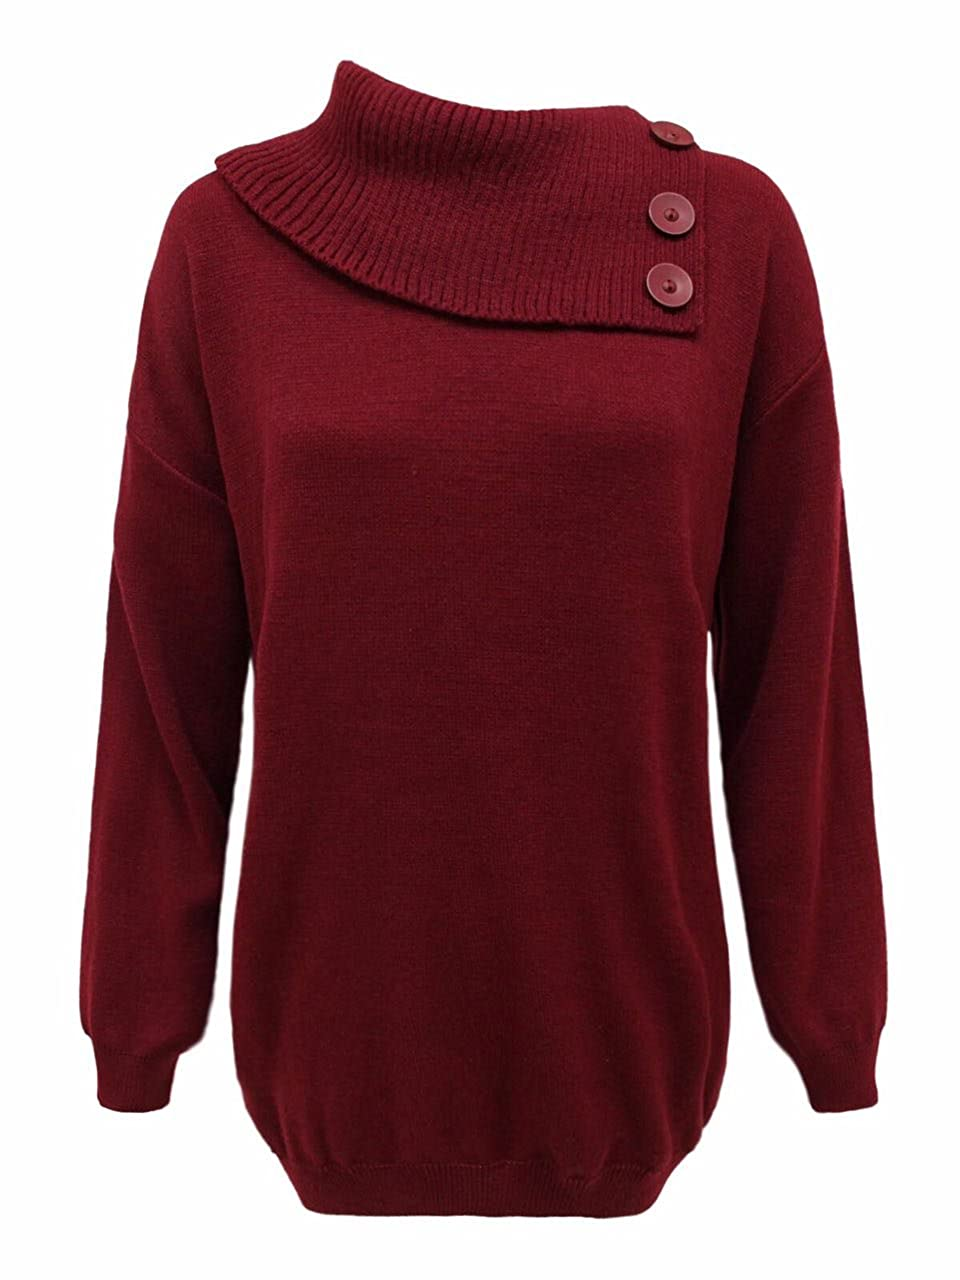 New Ladies Women 3 buttons Style Knitted Polo Neck Top Sweater Pullover Jumper ( Plus sizes 16/18 20/22 24/26 )